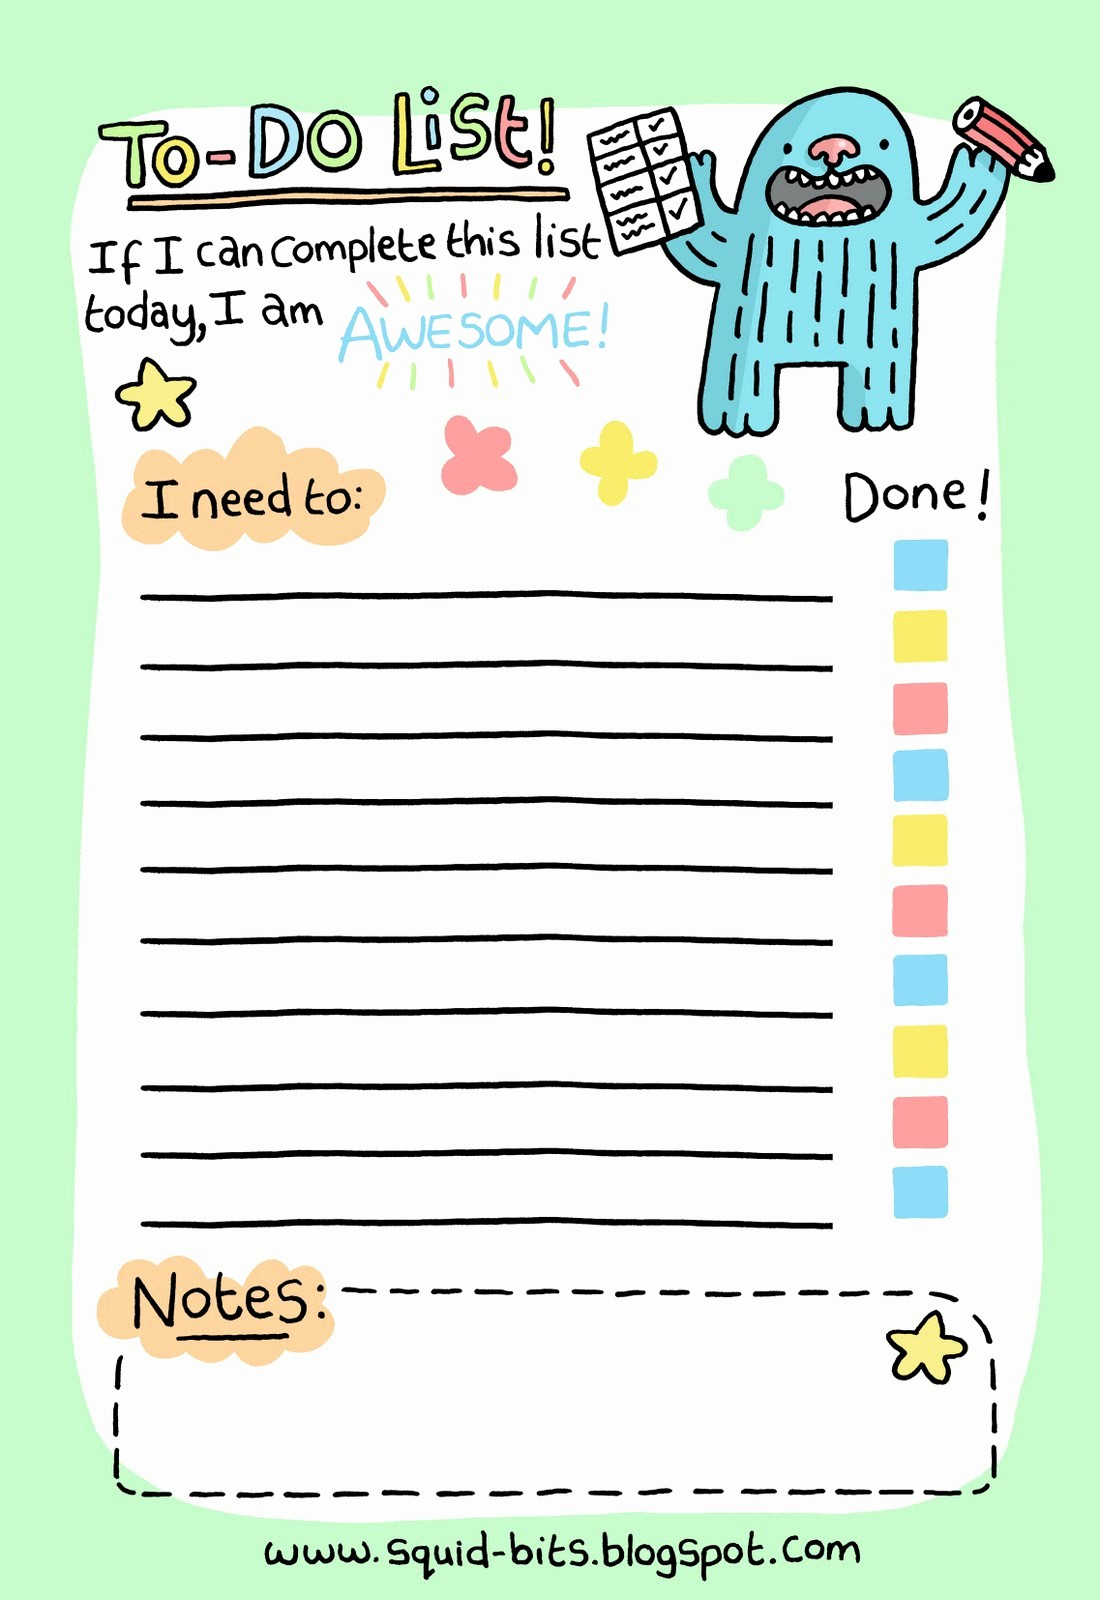 Things to Do today List Lovely Day 6 at Nanowrimo – Making A to Do List